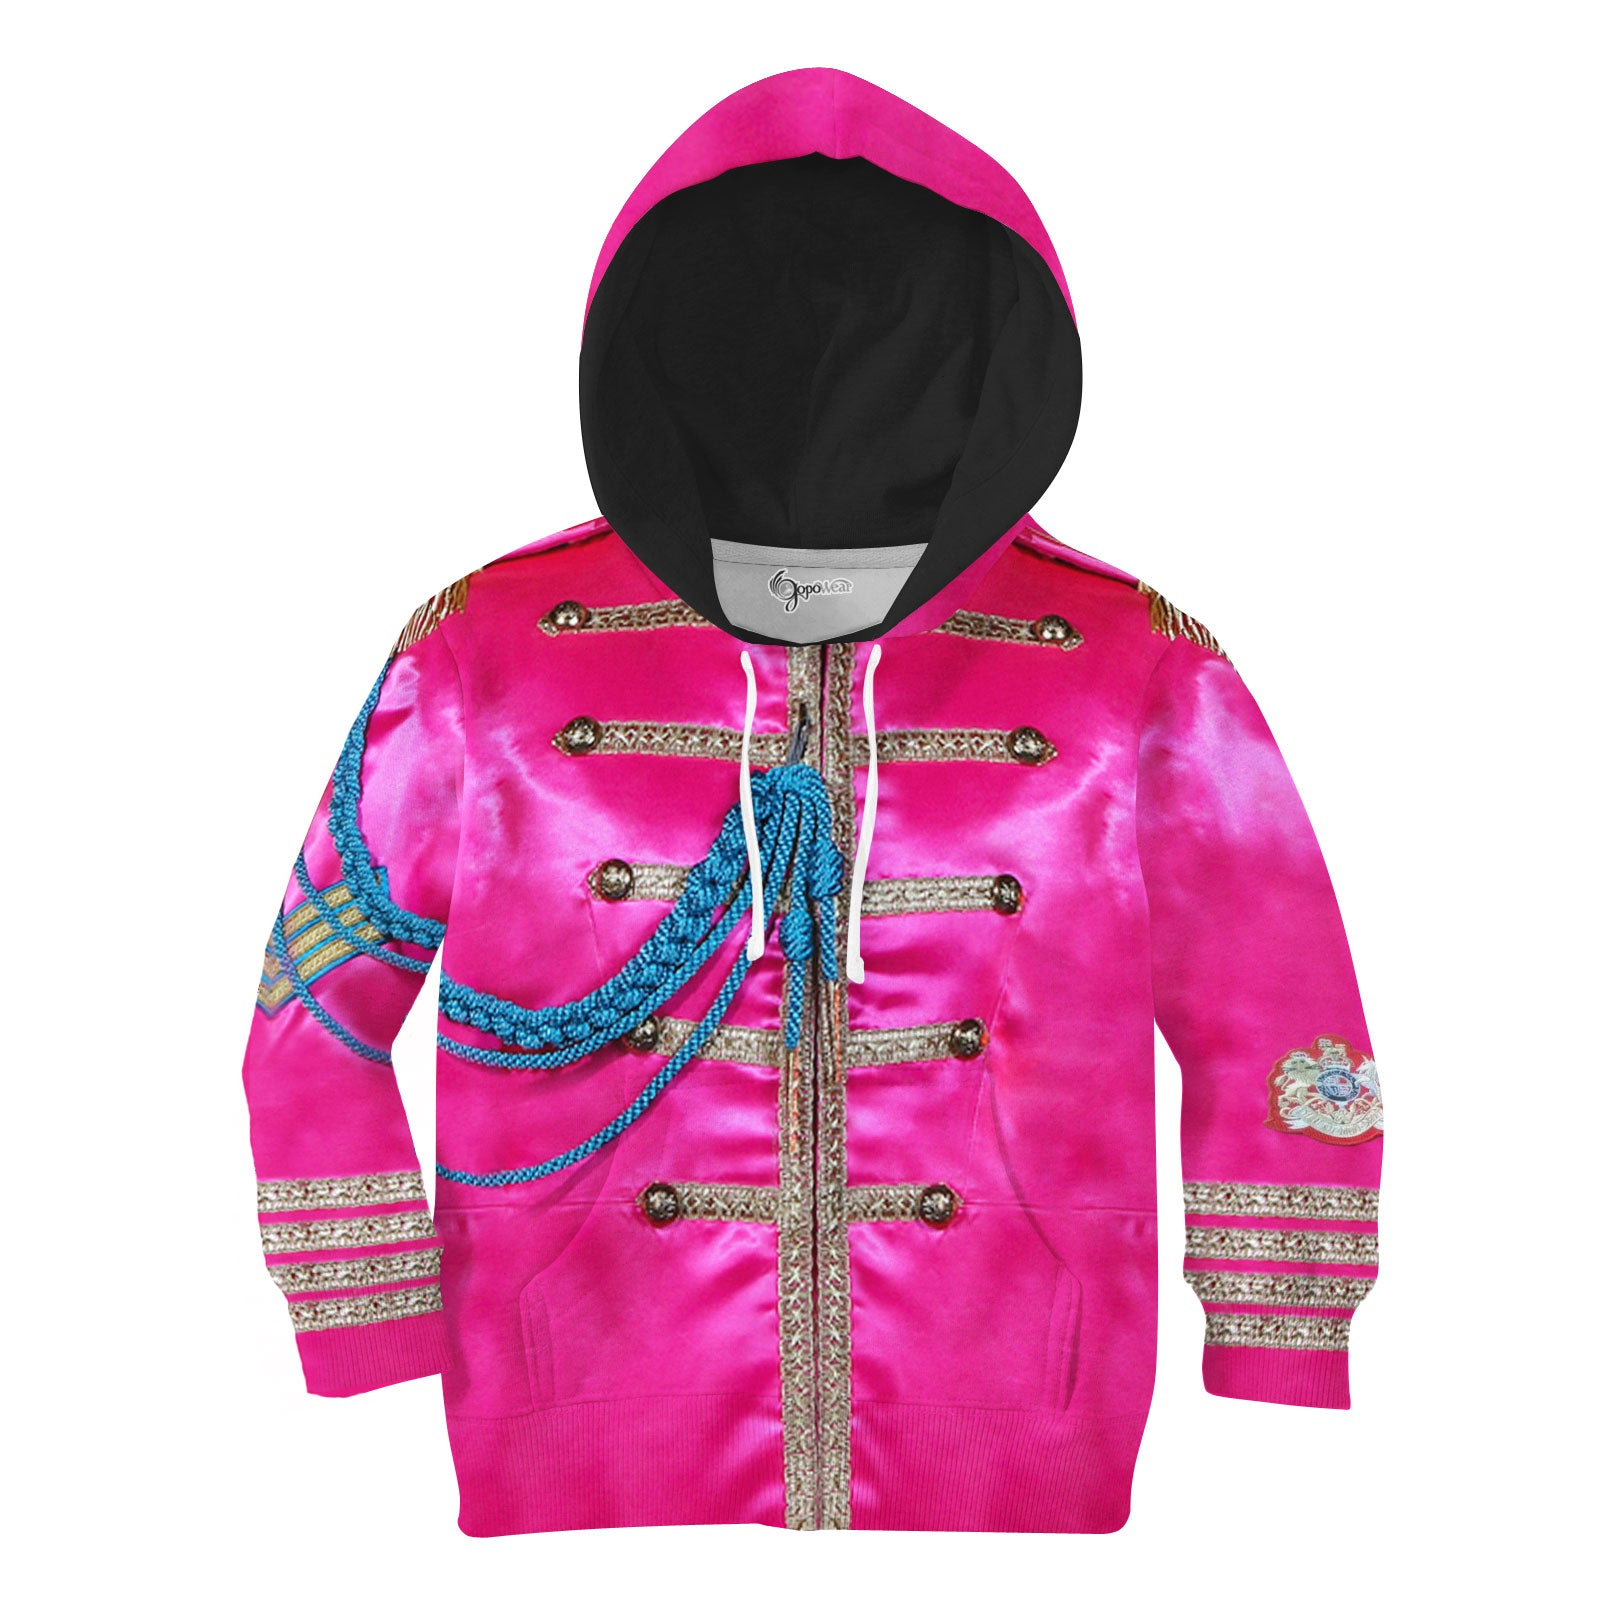 Military Jacket 3D All Over Printed Shirts For Kids